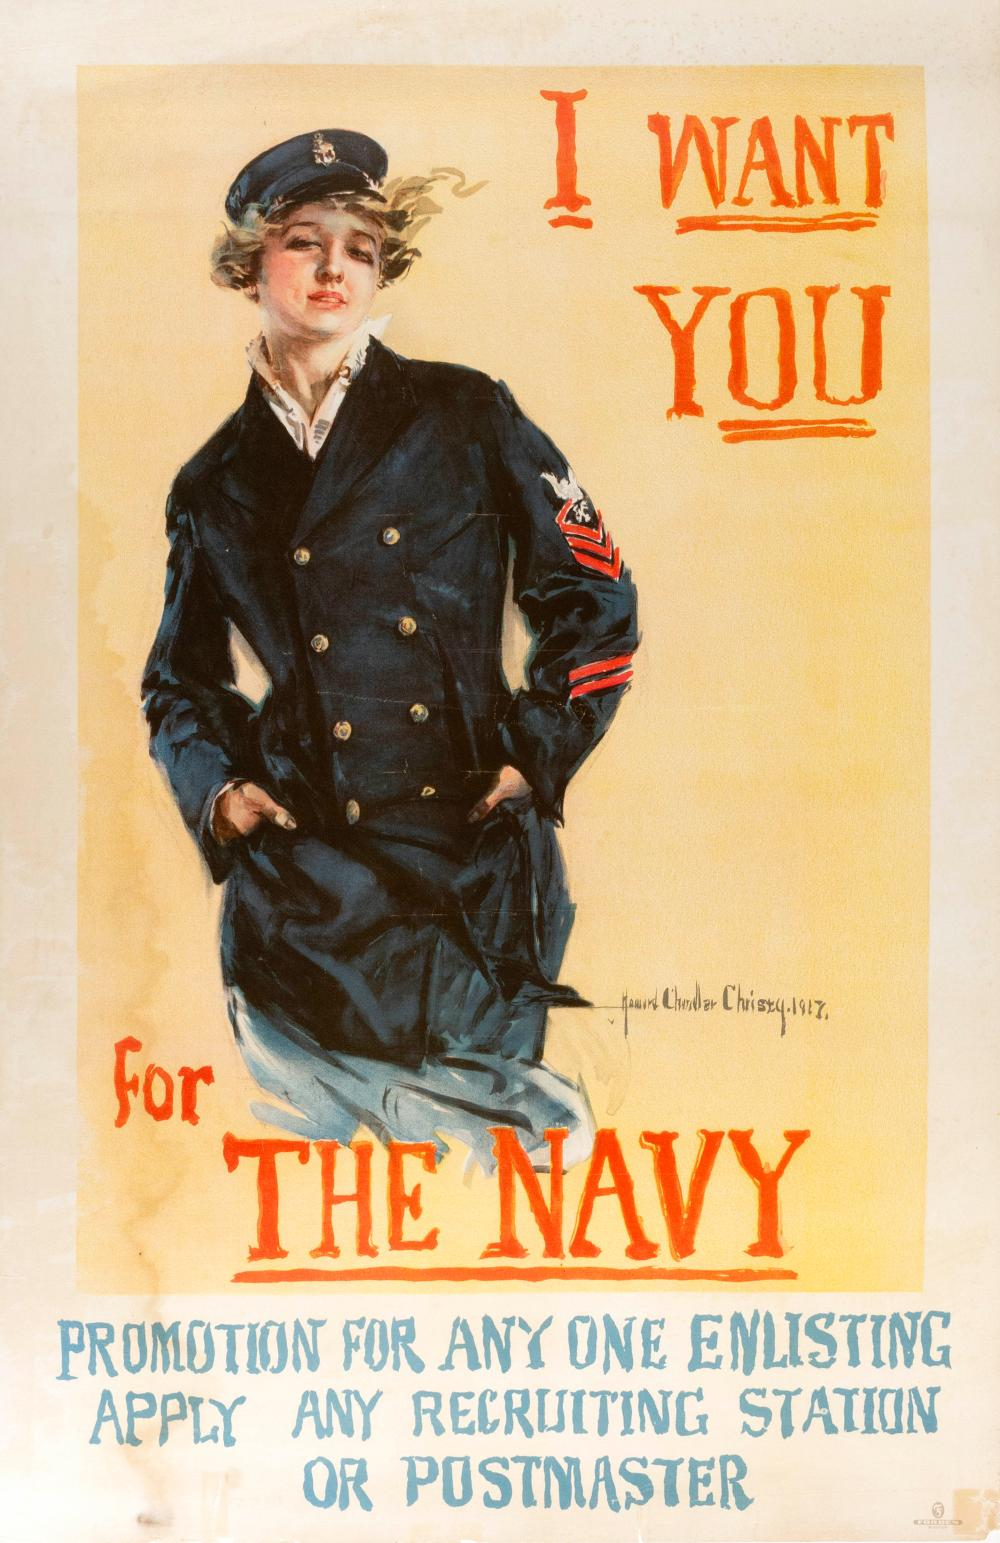 """""""I WANT YOU FOR THE NAVY ..."""" WORLD WAR I POSTER By Howard Chandler Christy, published by Forbes, Boston. Depicts a uniformed Wave a..."""